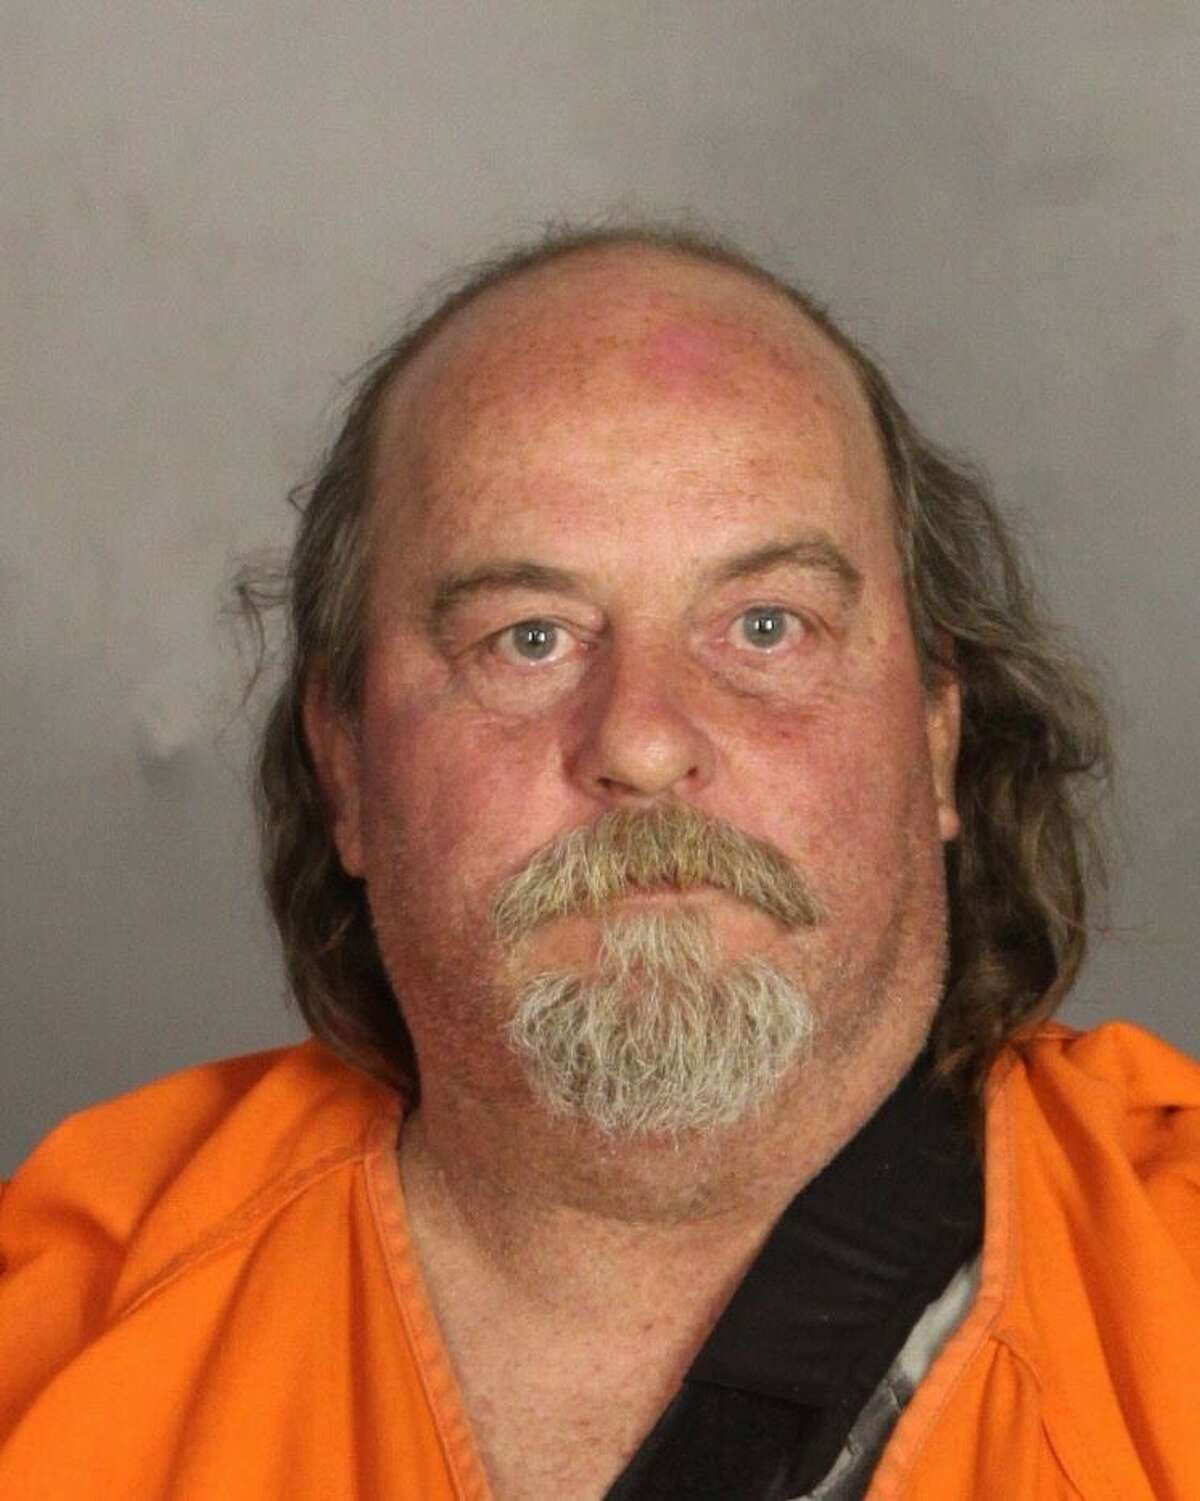 George Rogers, 52, was booked and charged with engaging in organized criminal activity in connection to a shooting involving motorcycle gangs at a Twin Peaks restaurant in Waco at around noon on May 17, 2015. The shooting left nine dead and 18 injured.